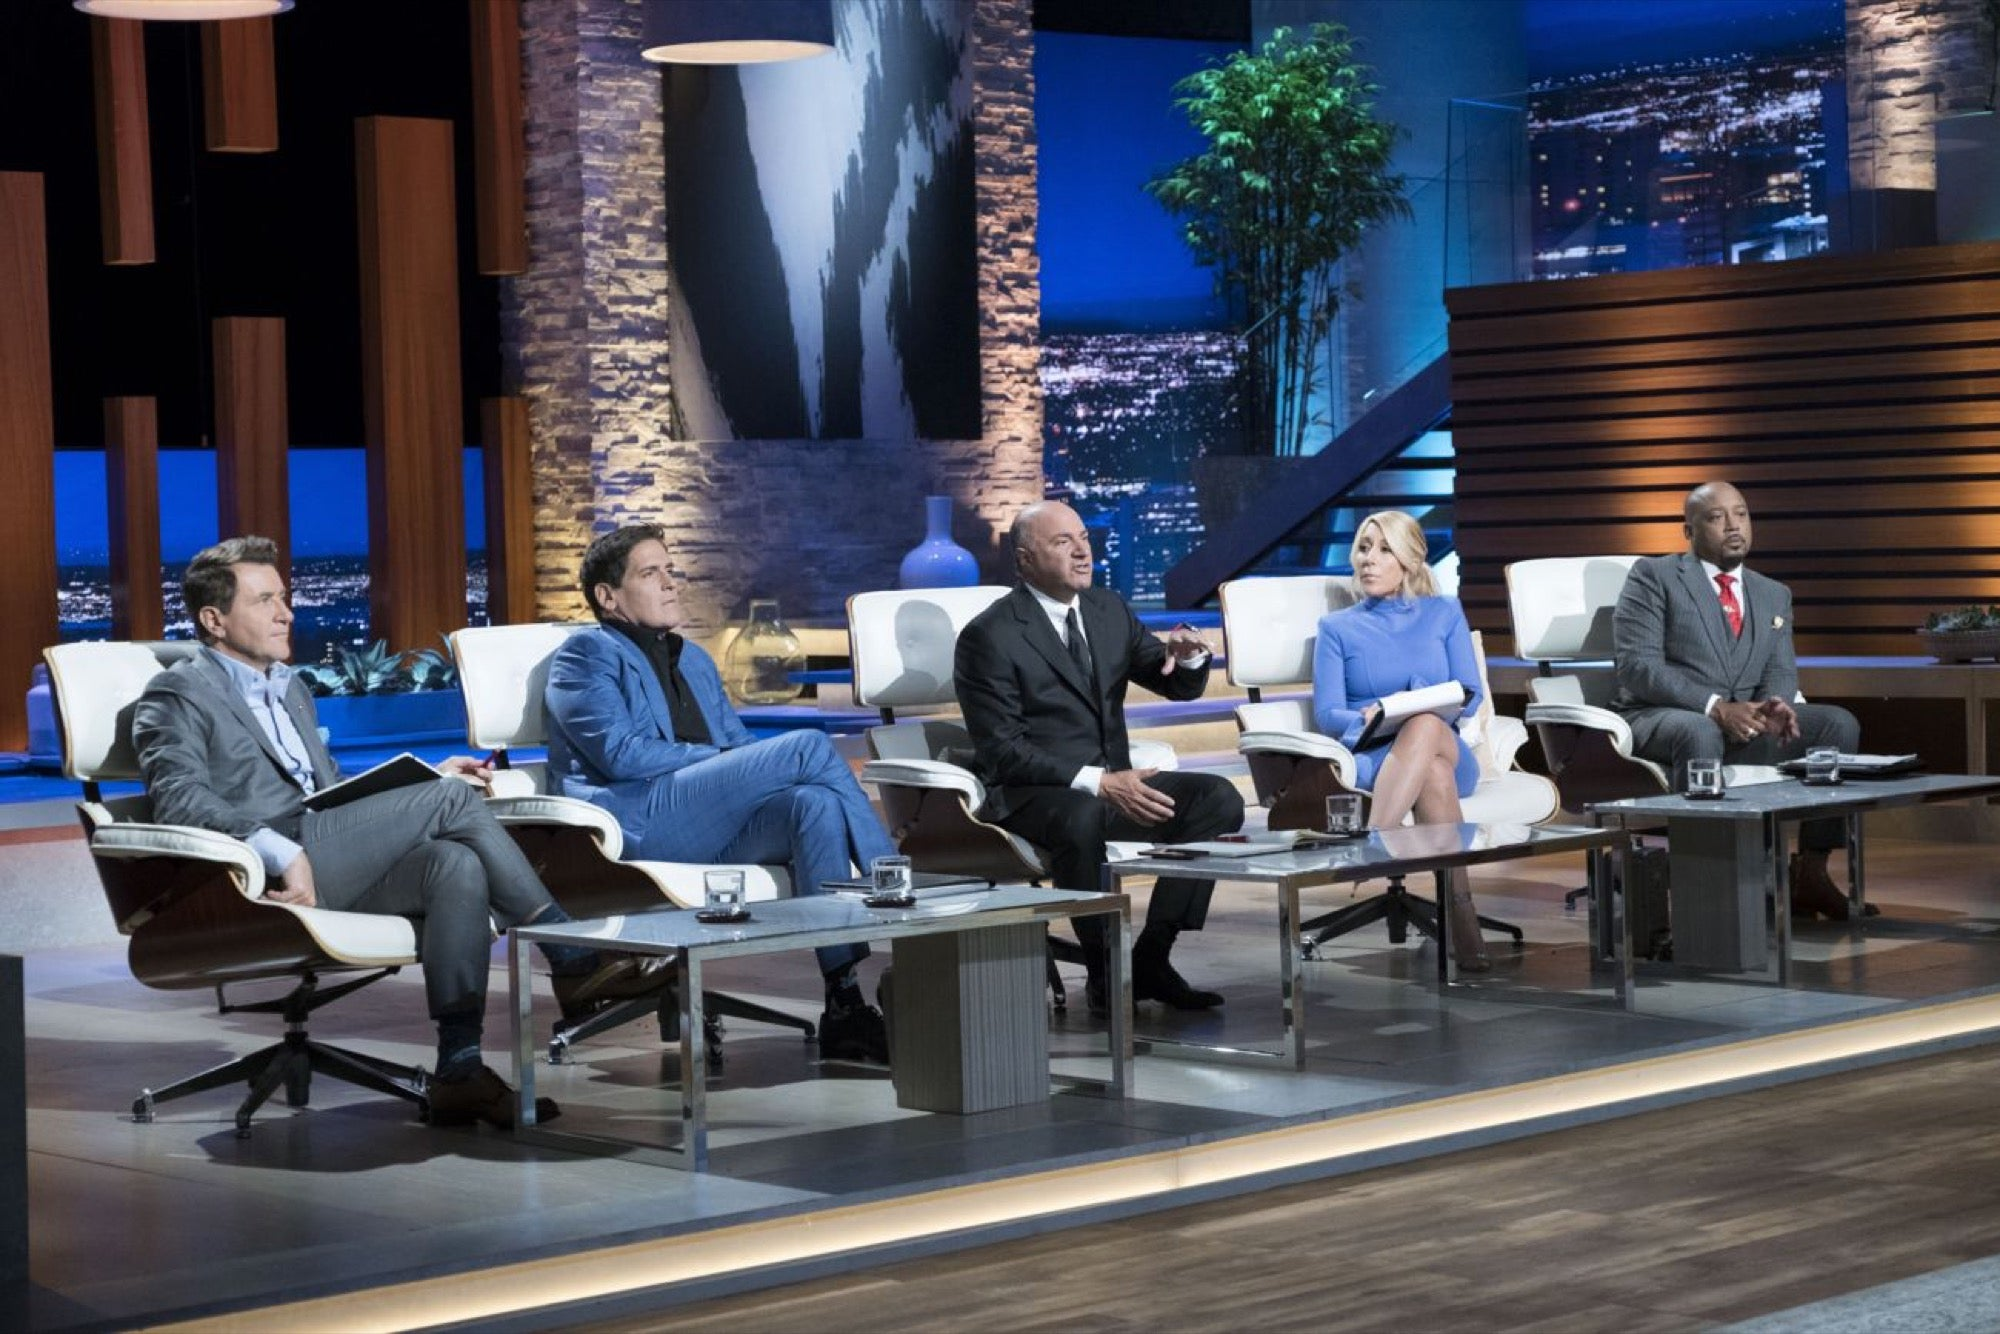 13 Million-Dollar Businesses That Turned Down 'Shark Tank' Deals